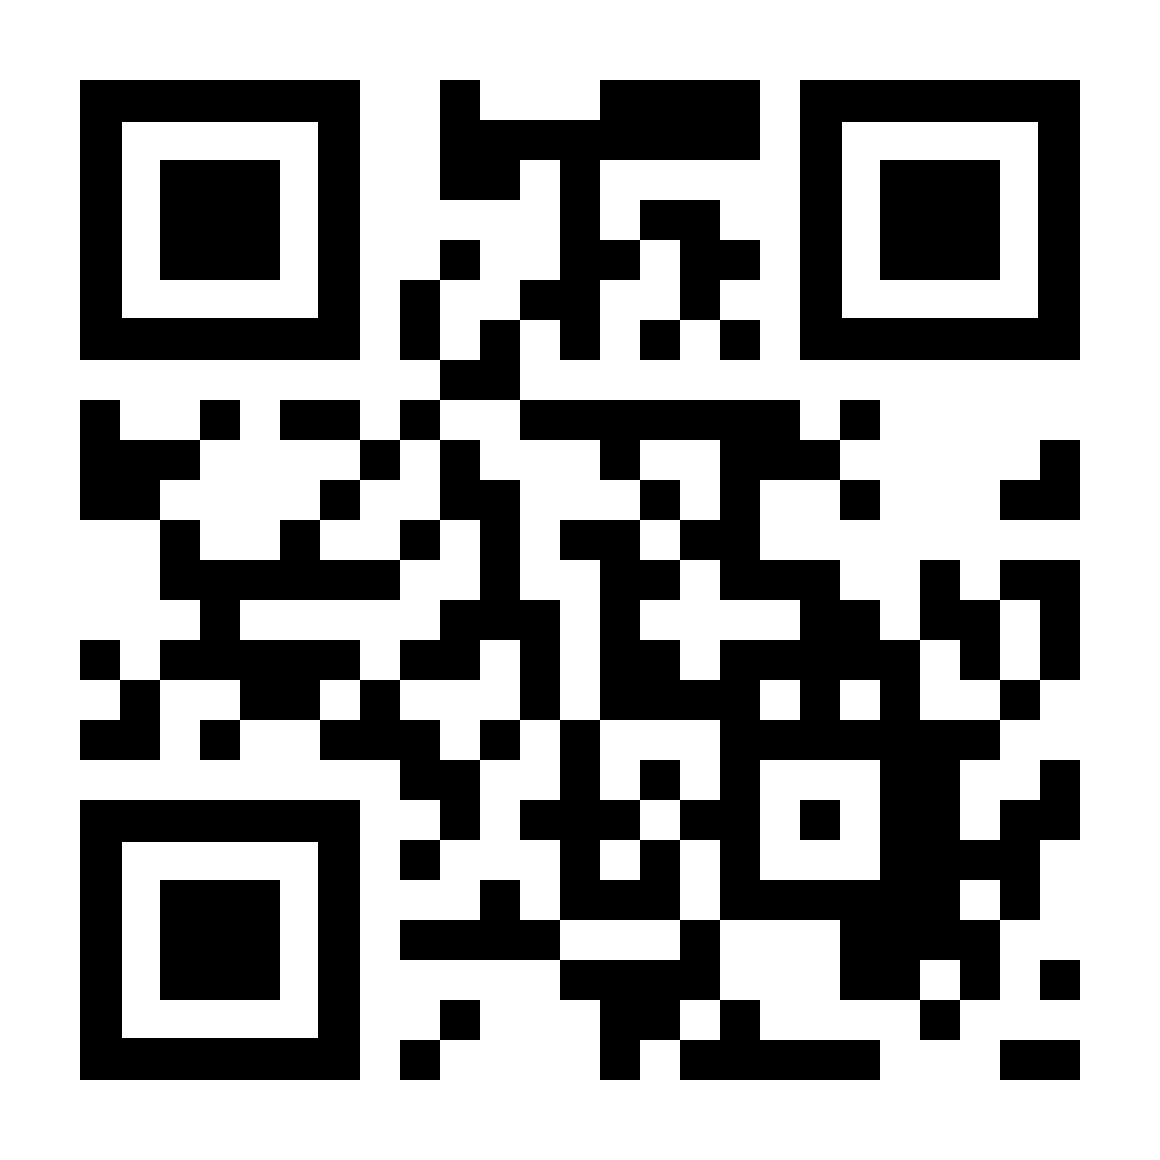 Occupational Health & physiotherapy QR code